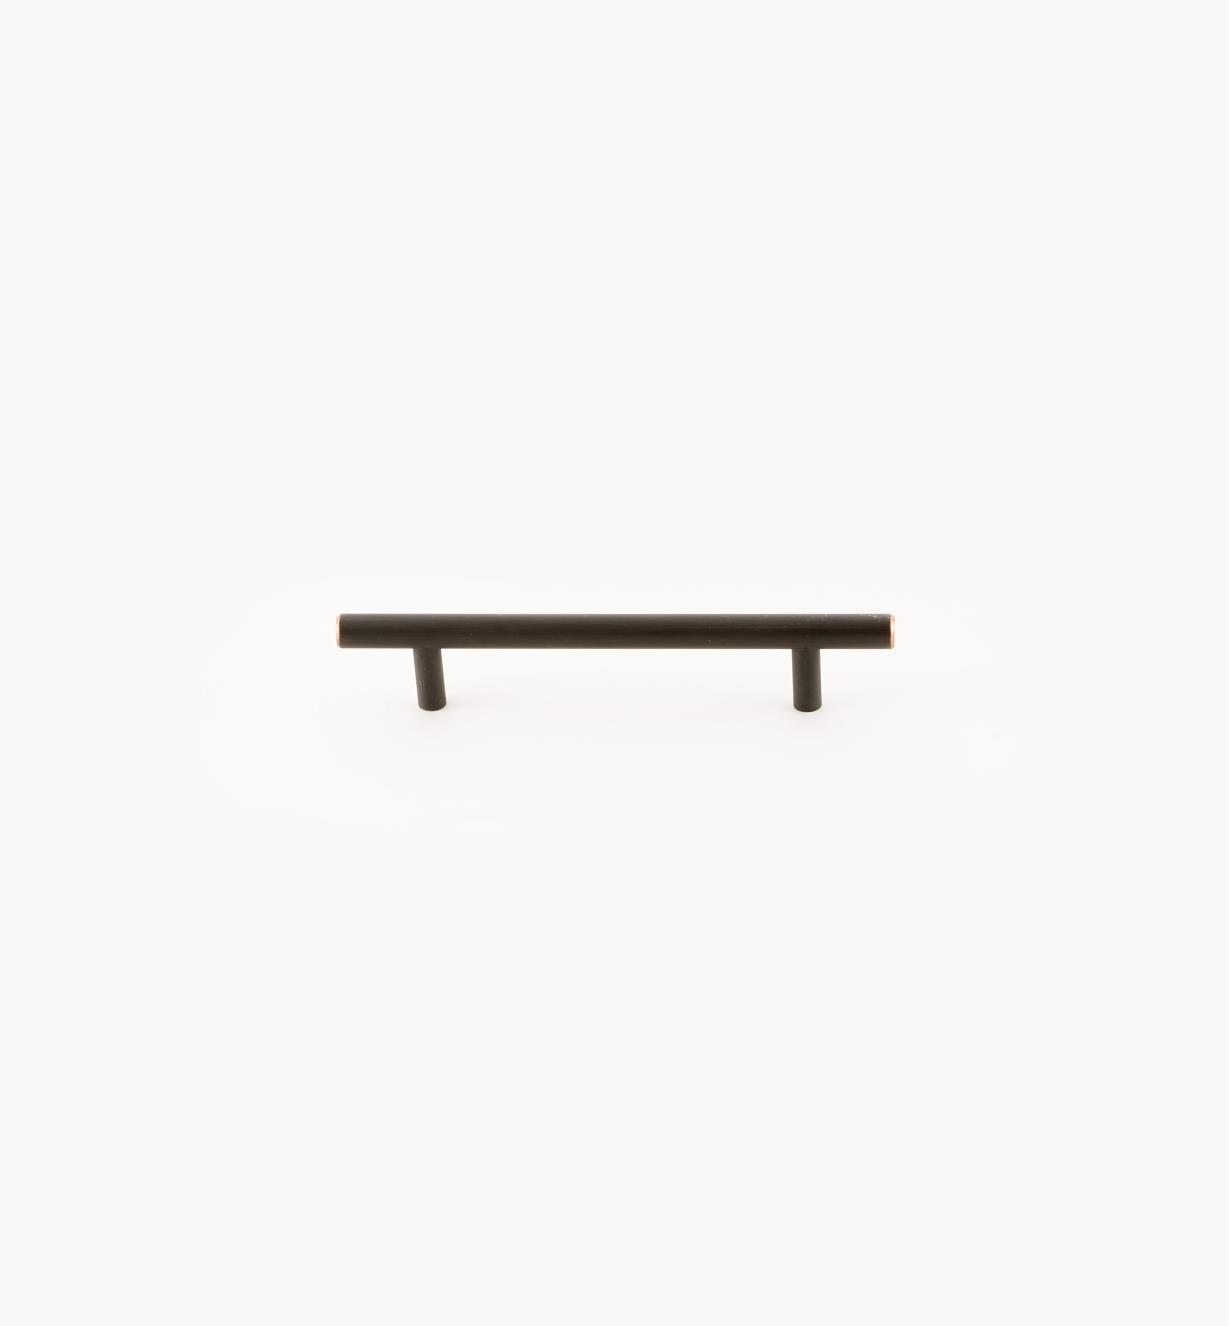 02A1487 - Bar Oil-Rubbed Bronze 128mm (187mm) Pull, each